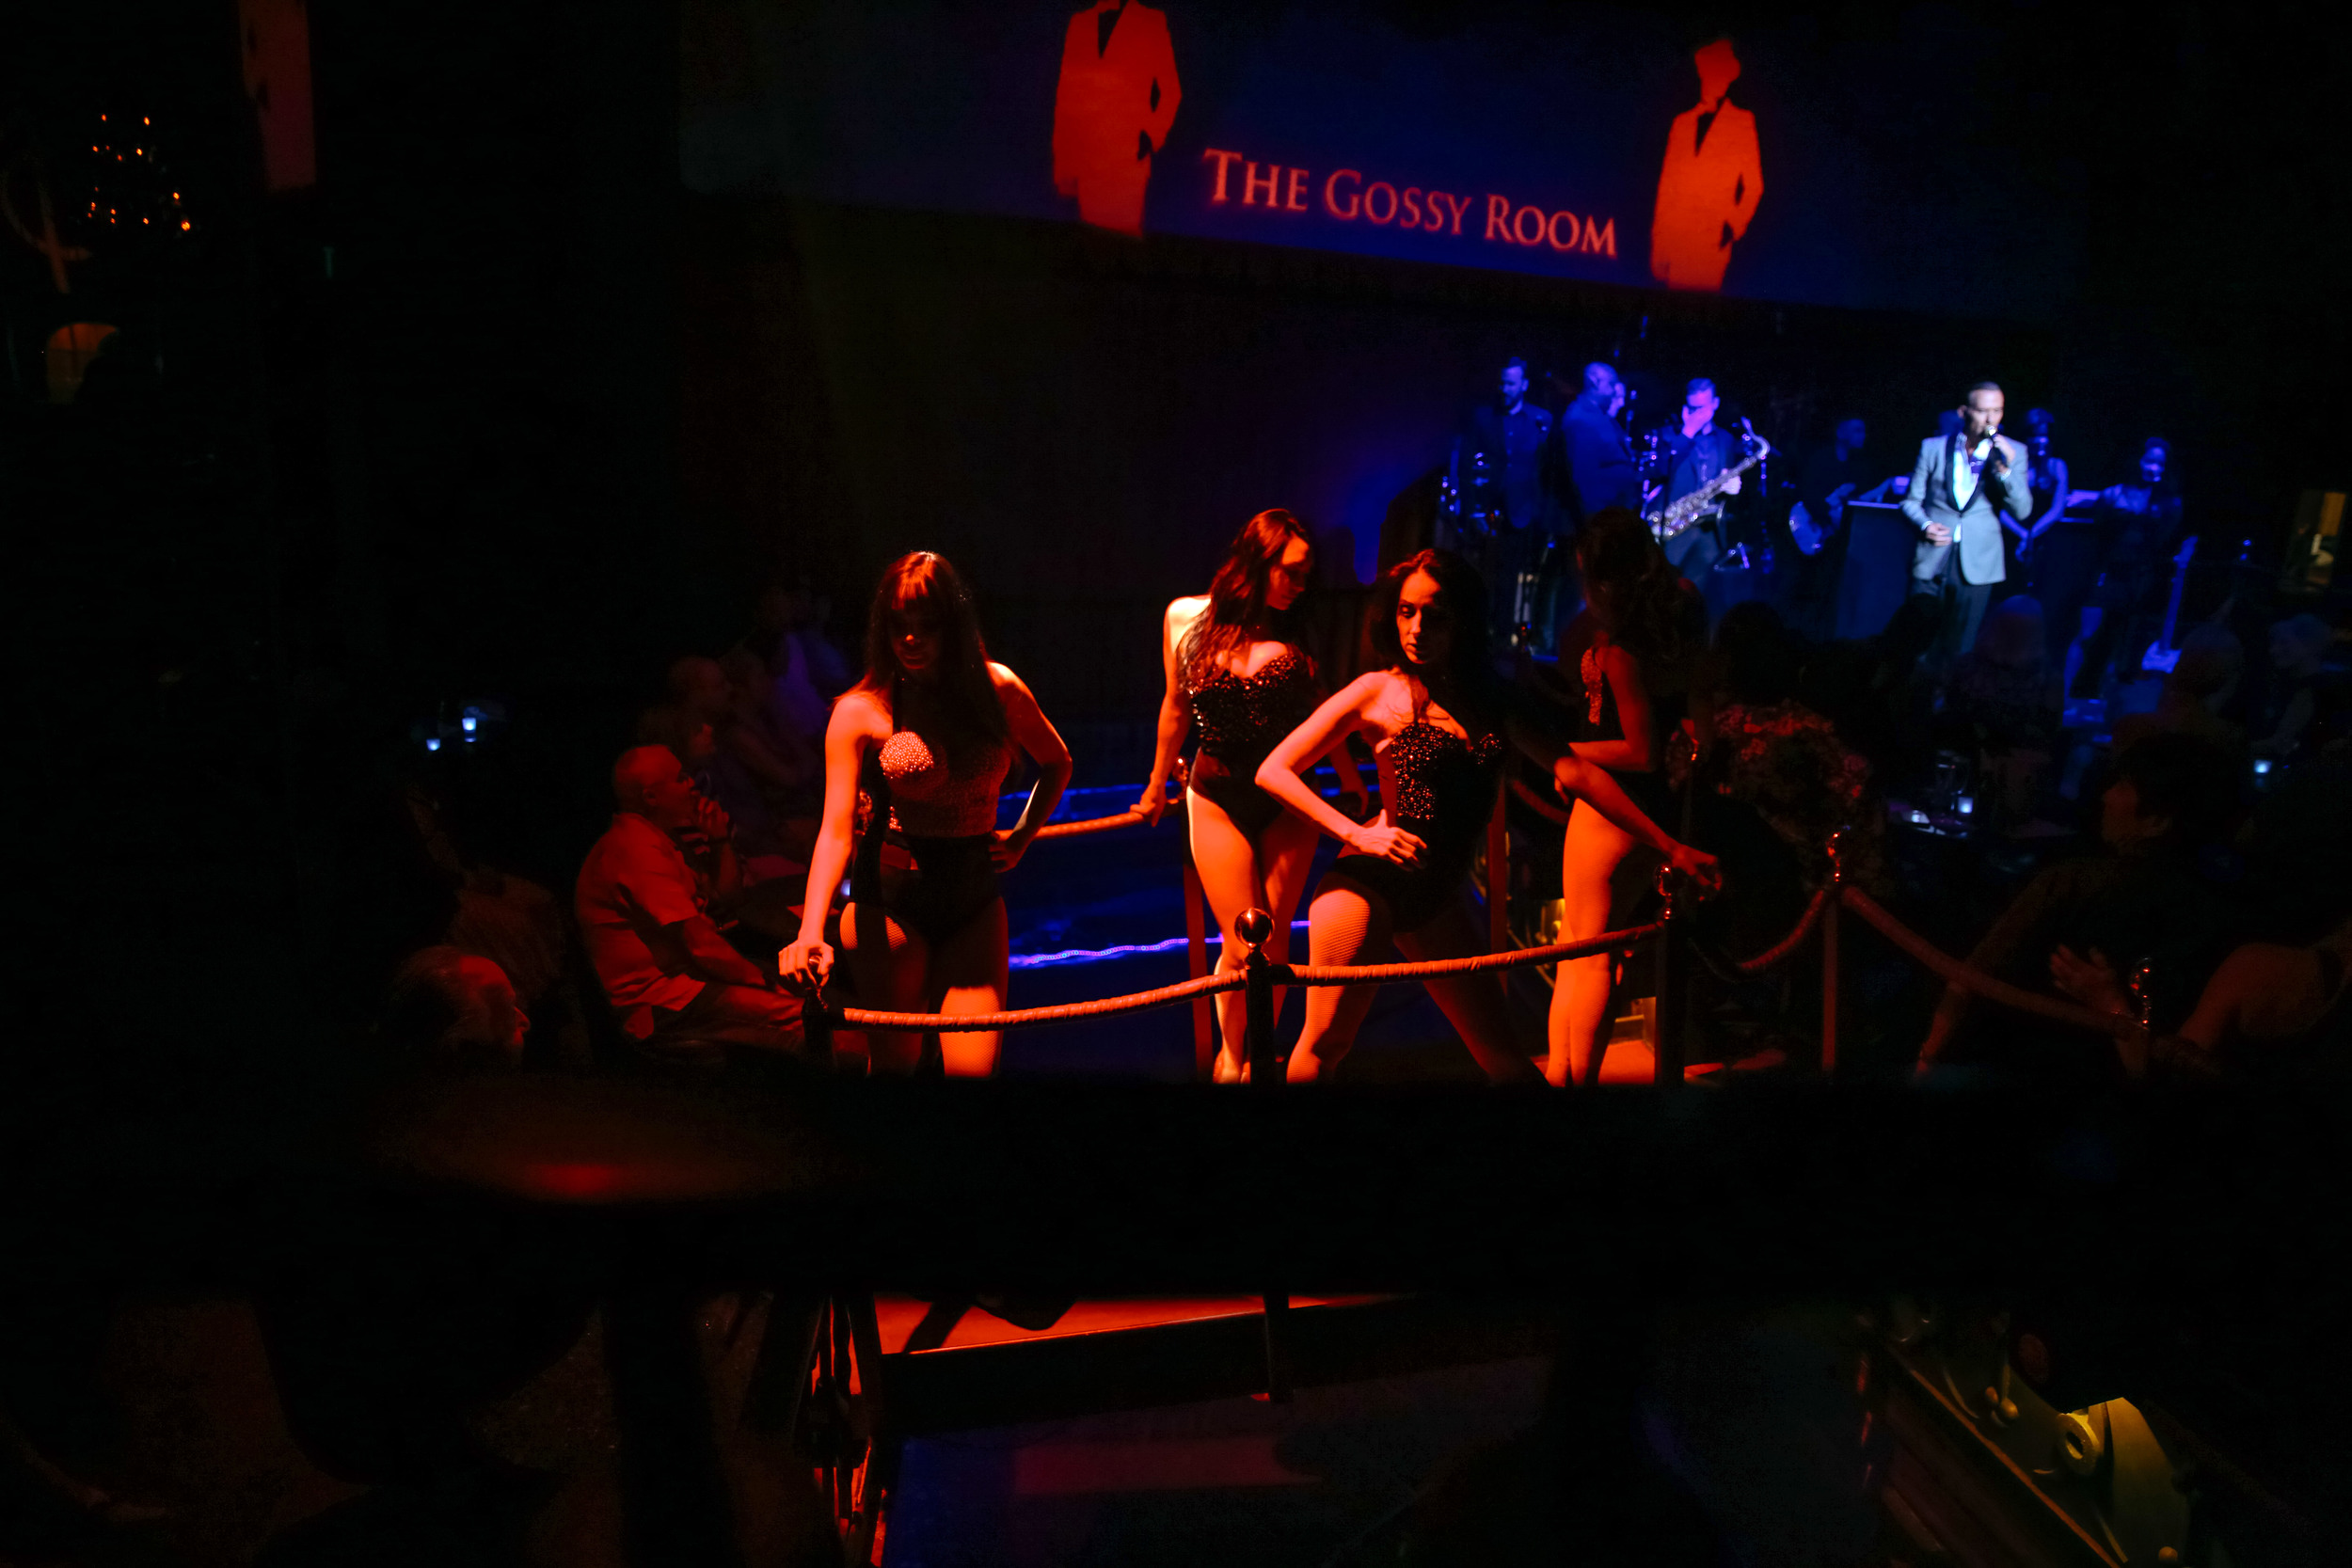 Dancers at Matt Goss' show.